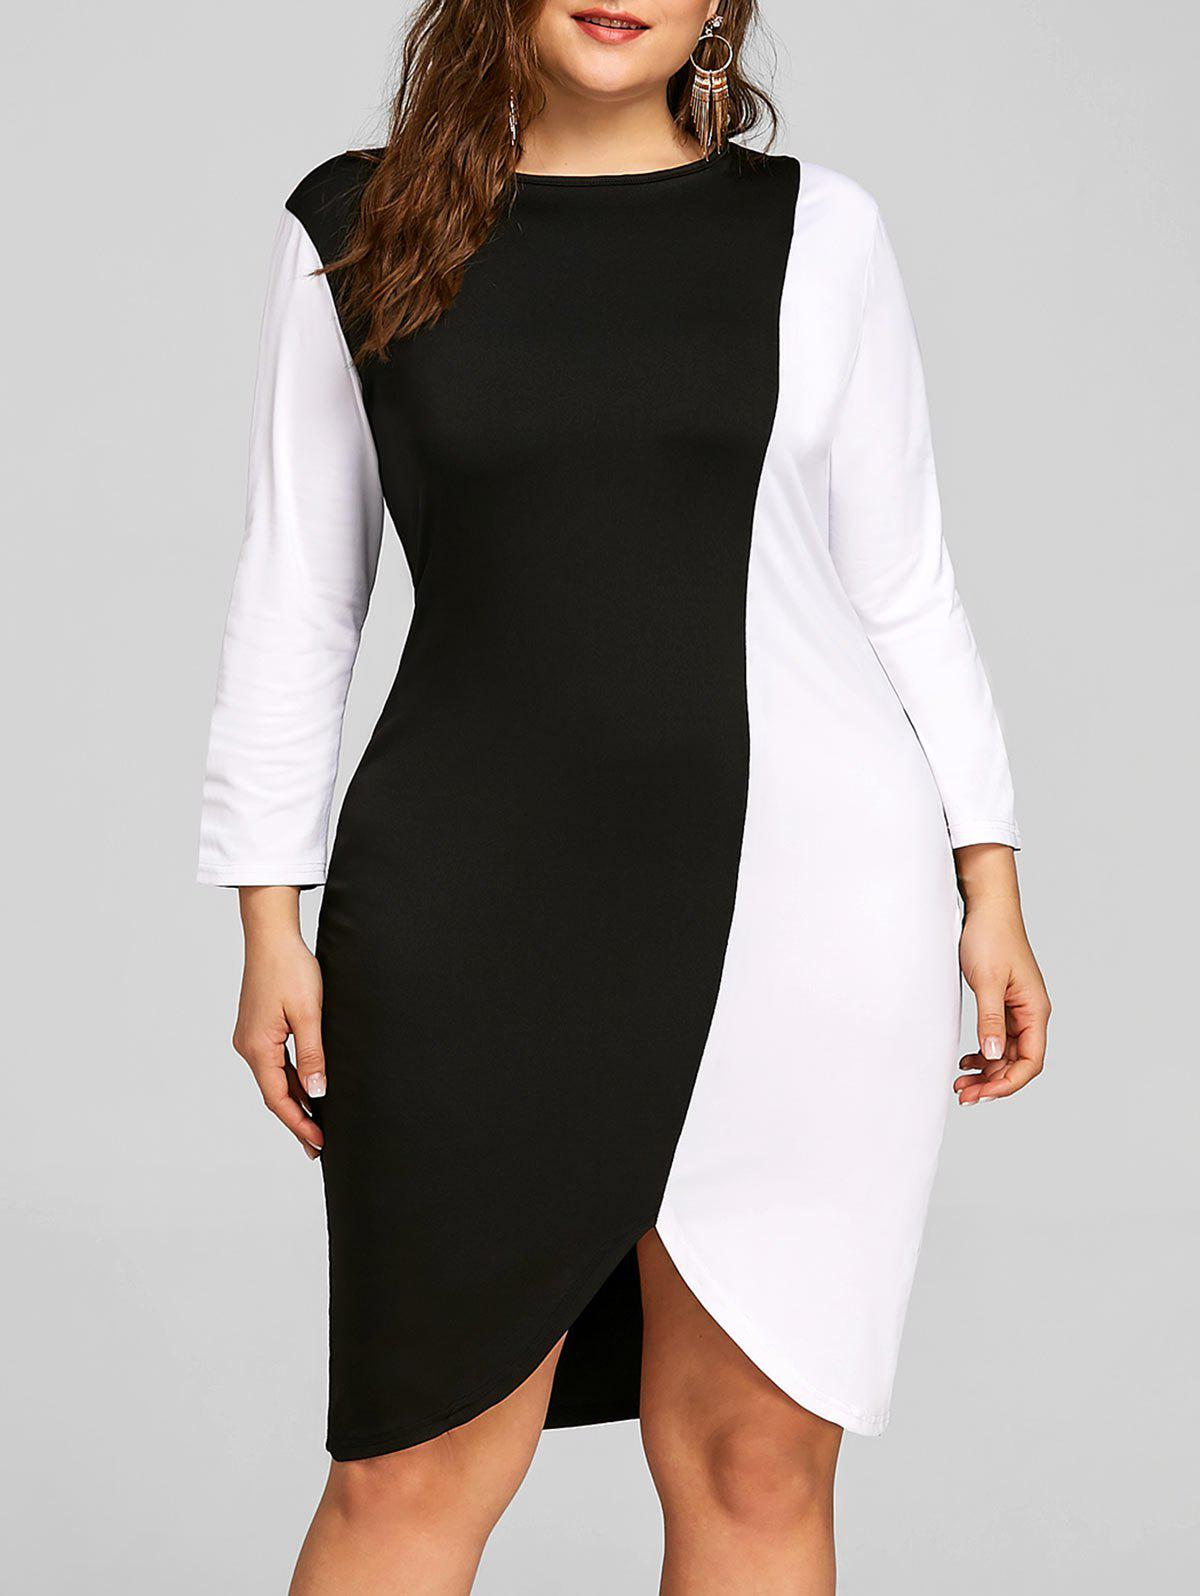 Shops Color Block Plus Size Sheath Dress